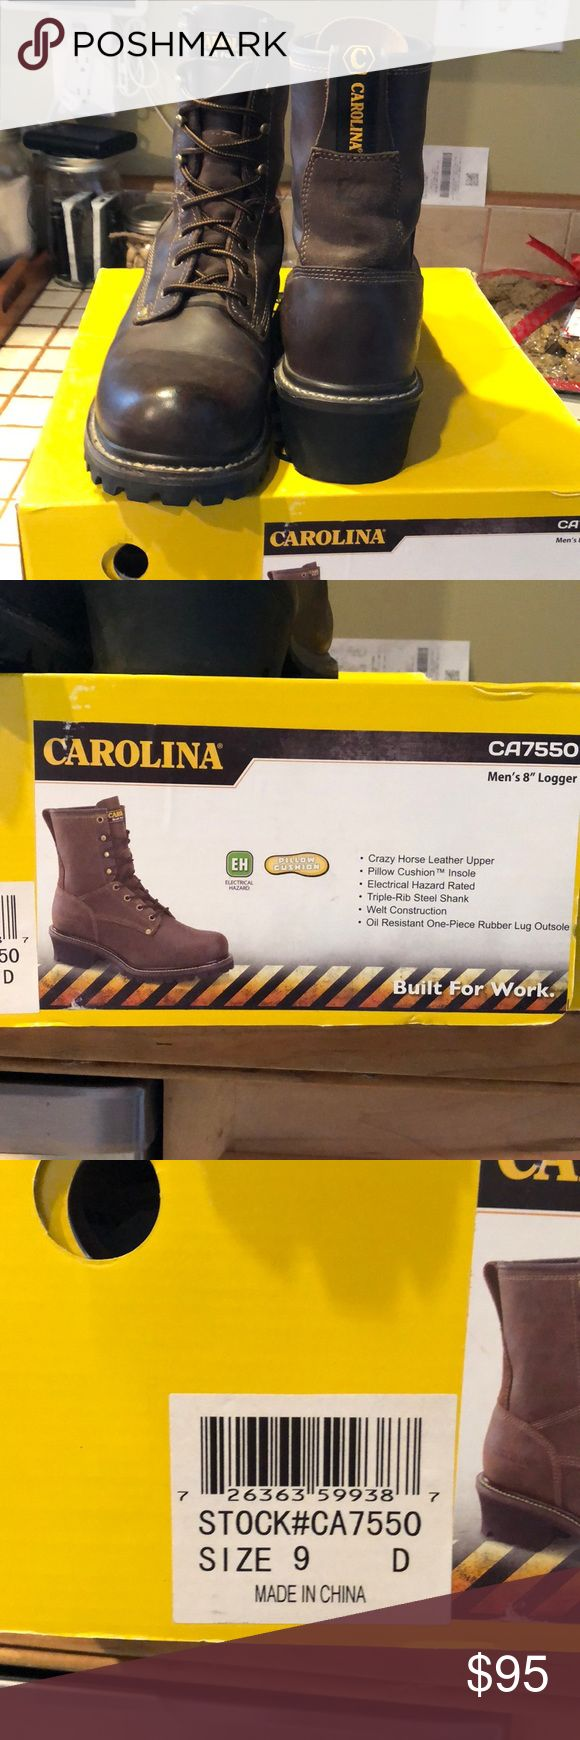 """Like new Carolina men's 8""""Logger boots Like new men's size 9 Carolina 8"""" Logger boots. Only worn three times. With original box. Great for Christmas gift 🎁 I am open to offers. Carolina Shoes Boots"""